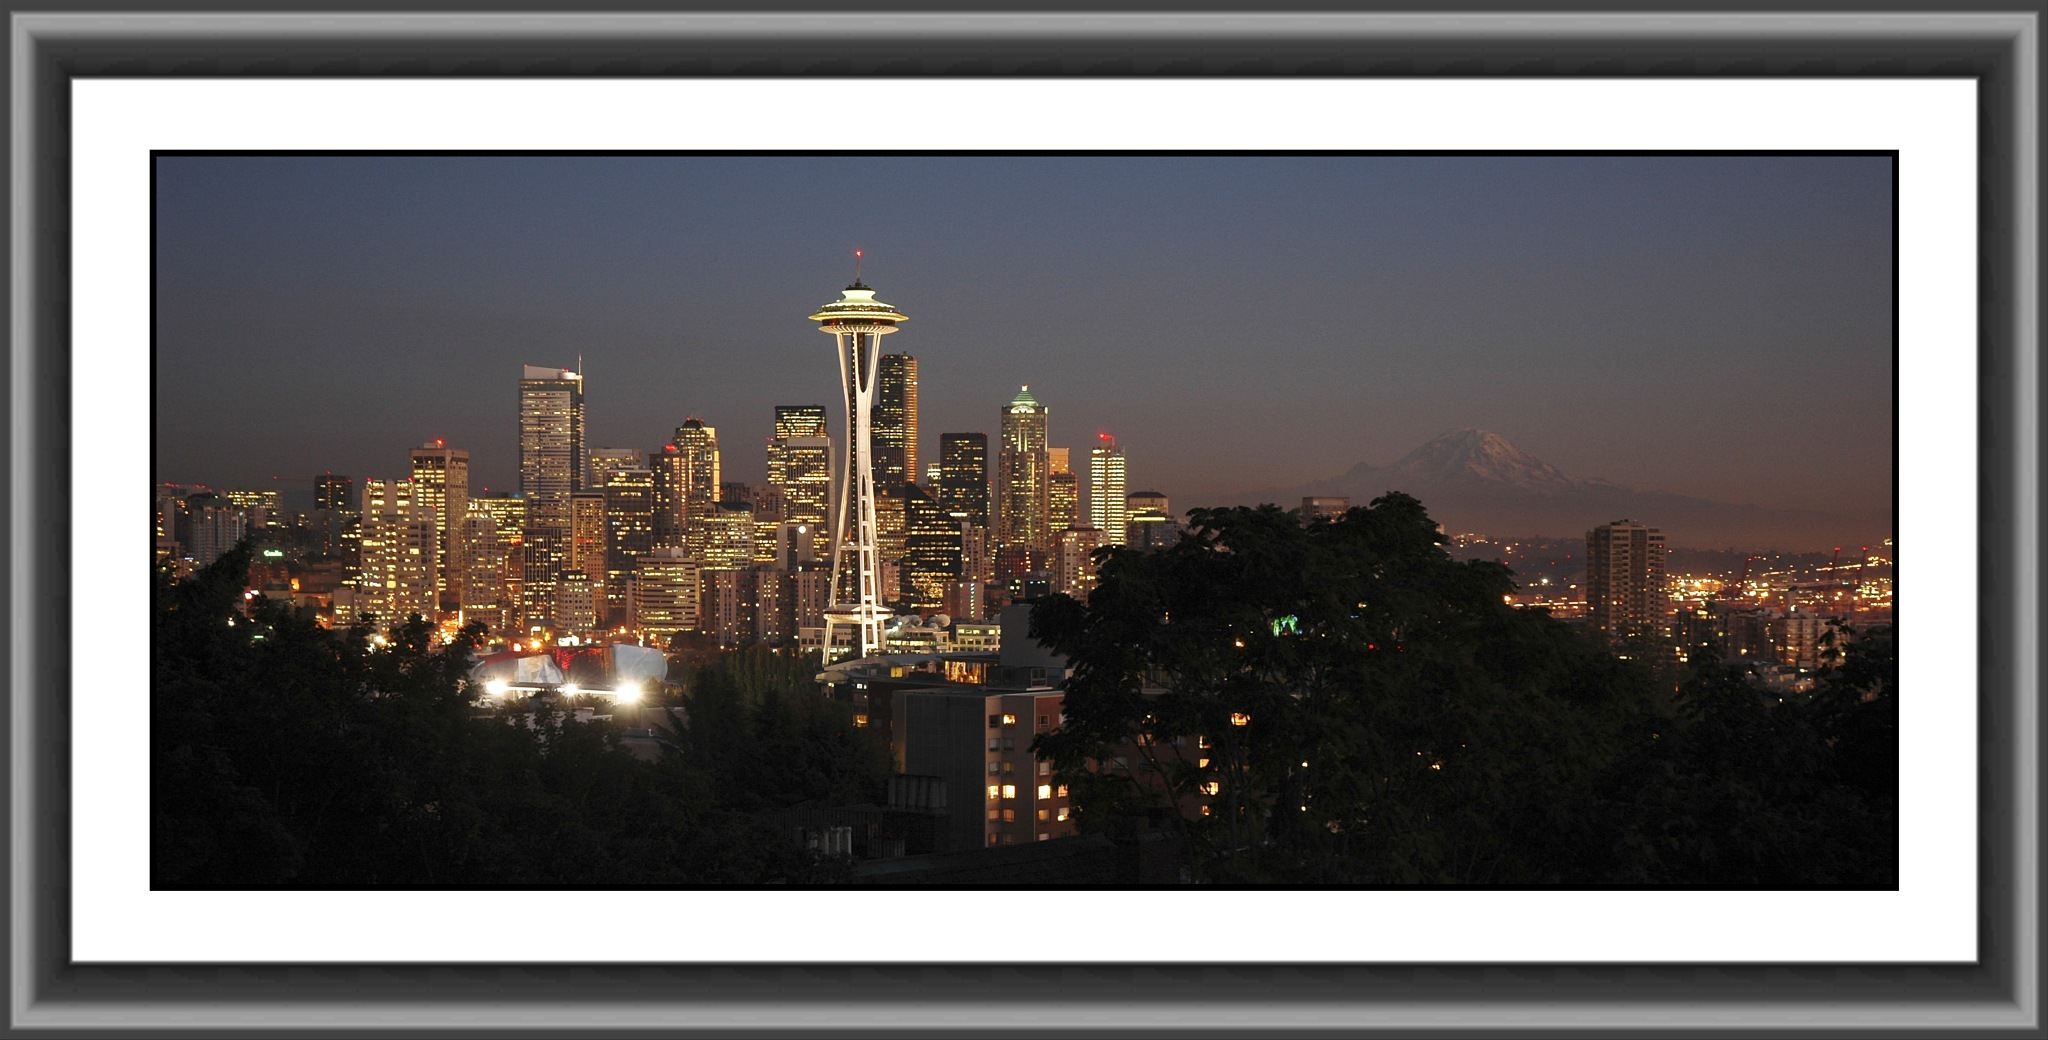 Seattle at Dusk by Michael D. Davis